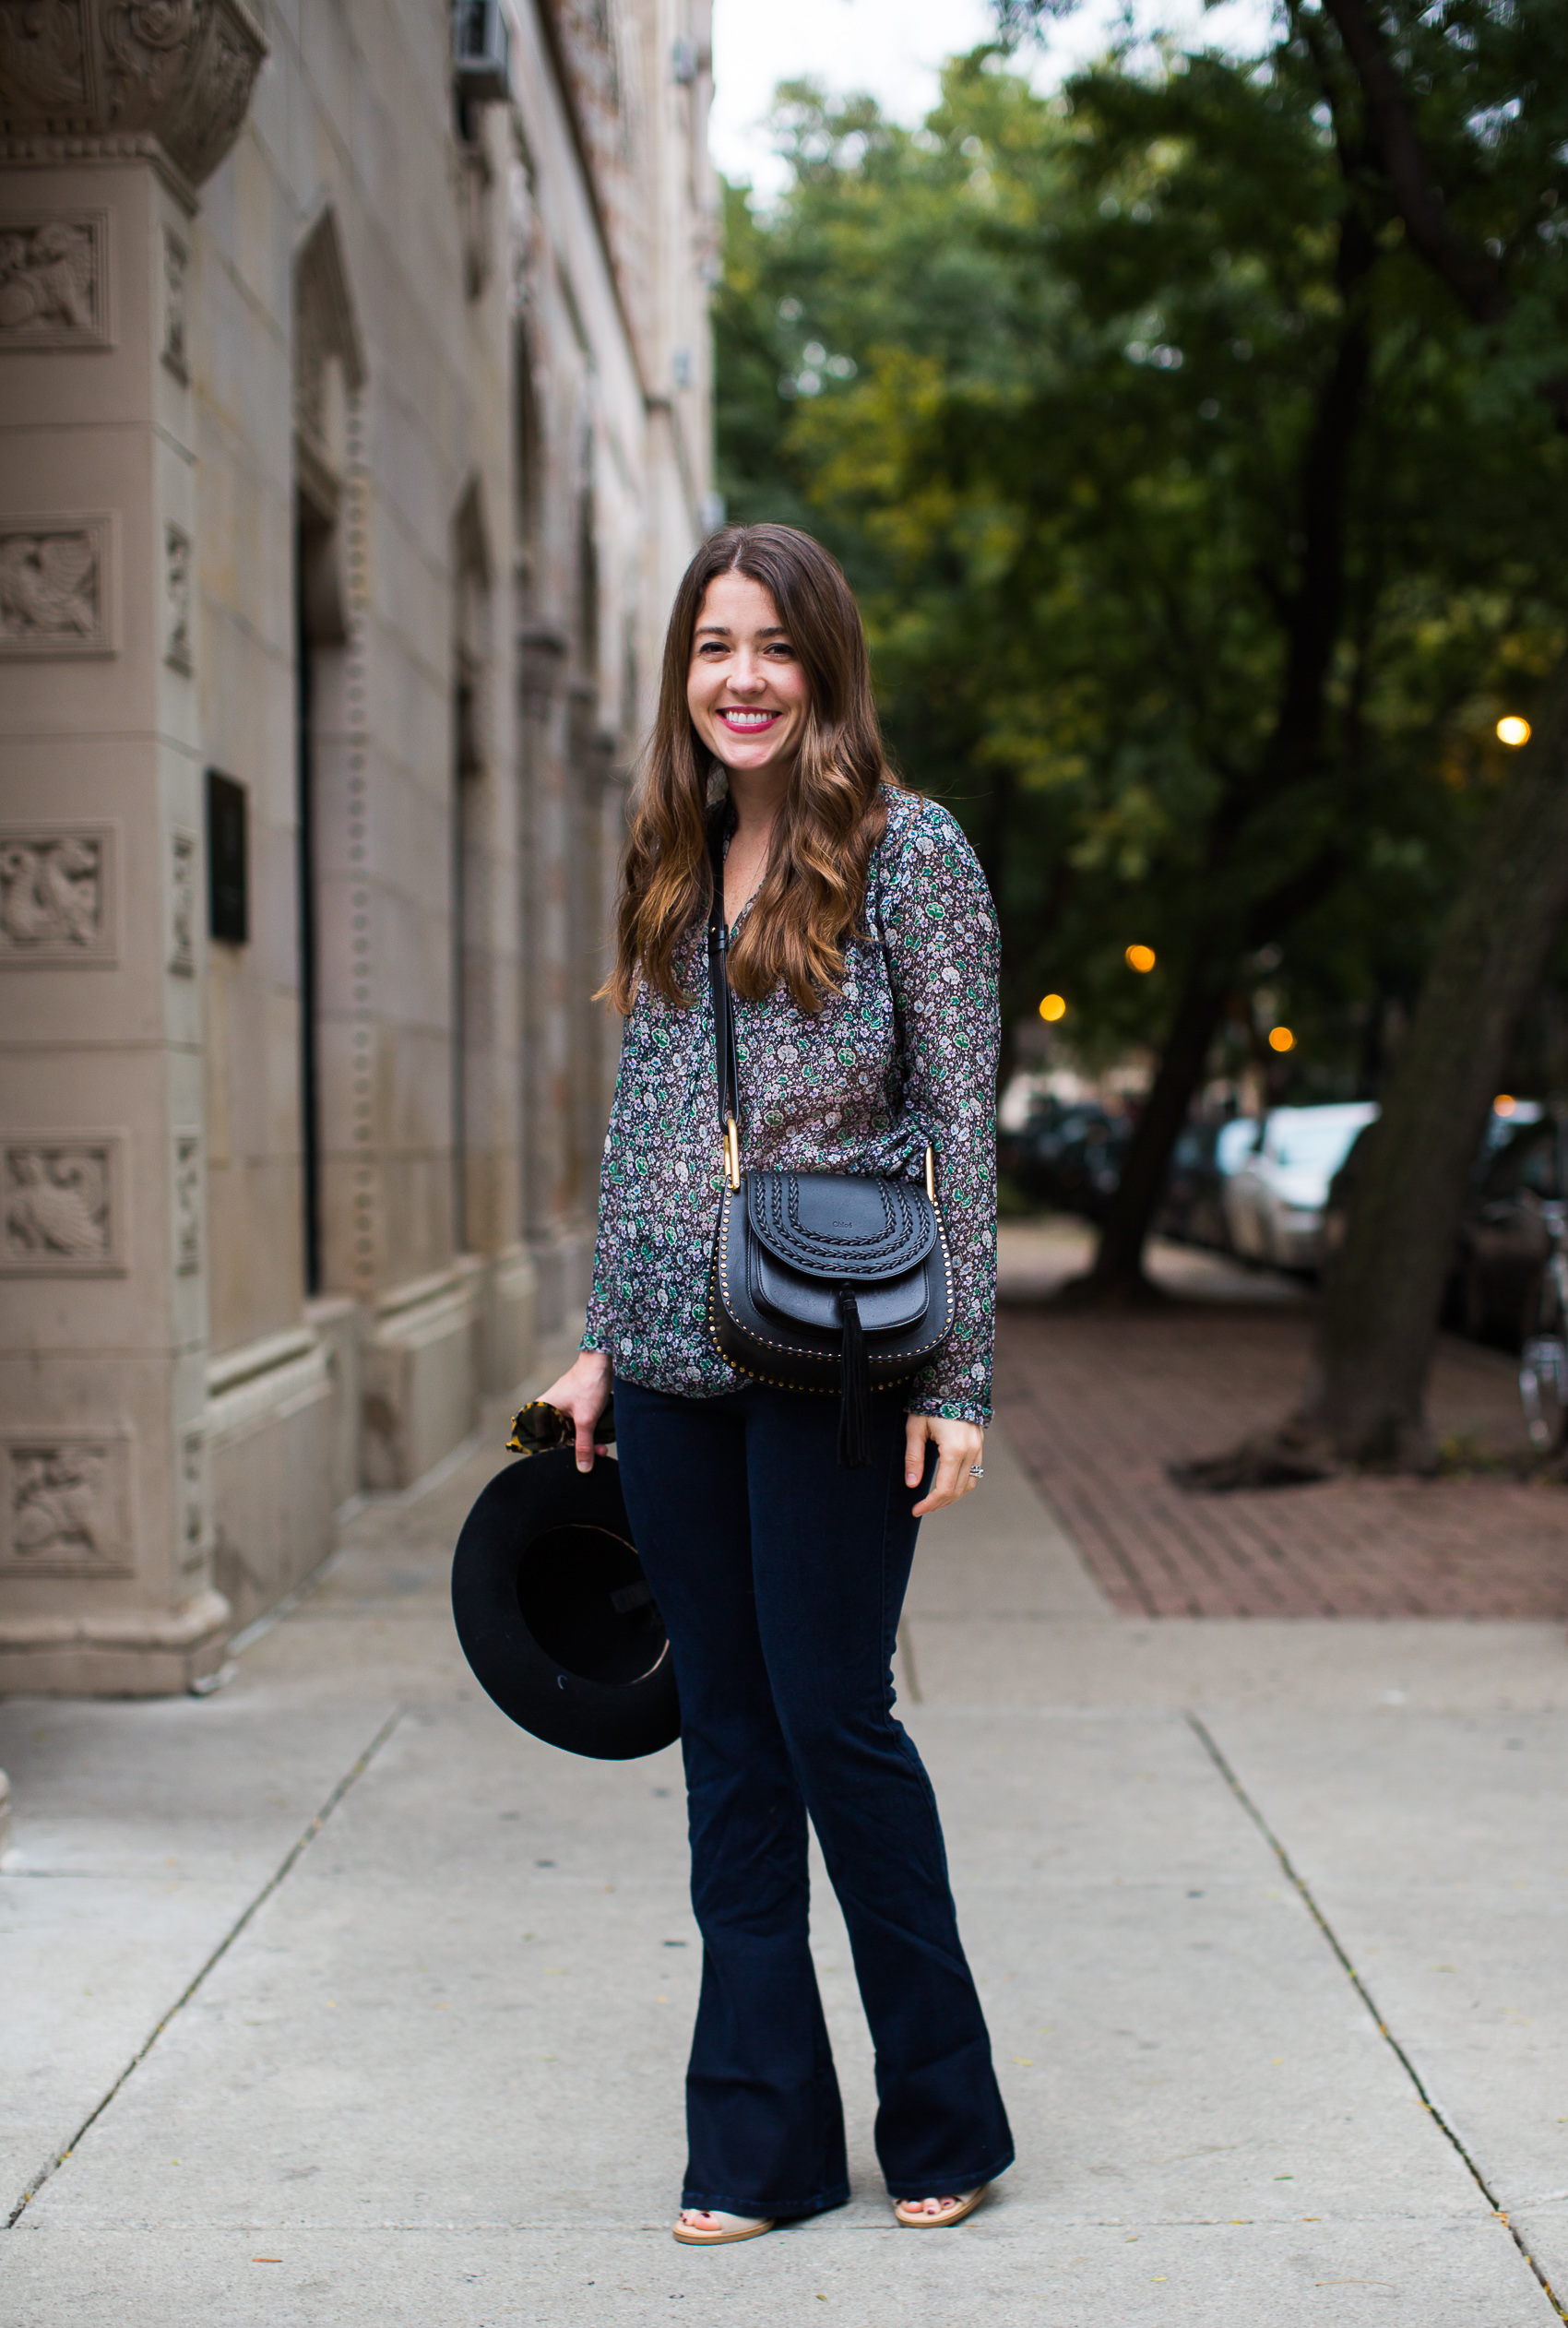 boho fall style from Liz Adams Chicago fashion blogger